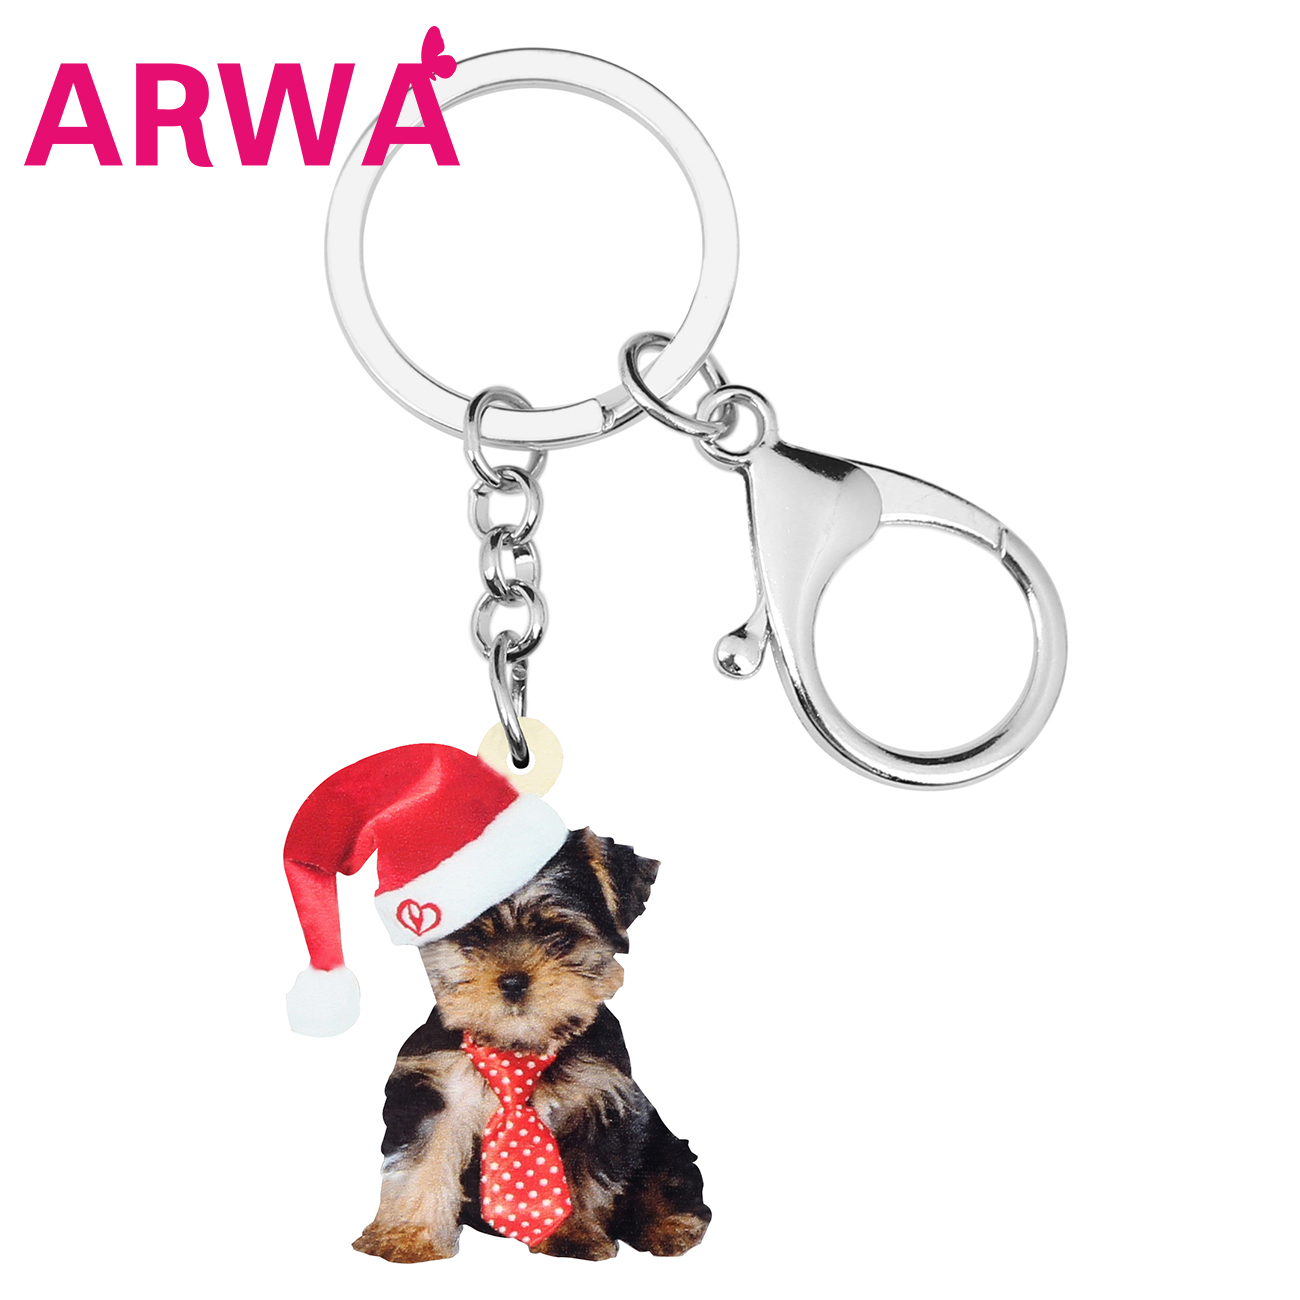 BOXER Dog Key Ring Keychain Key Chain NEW Great gift Animal Pet I love my